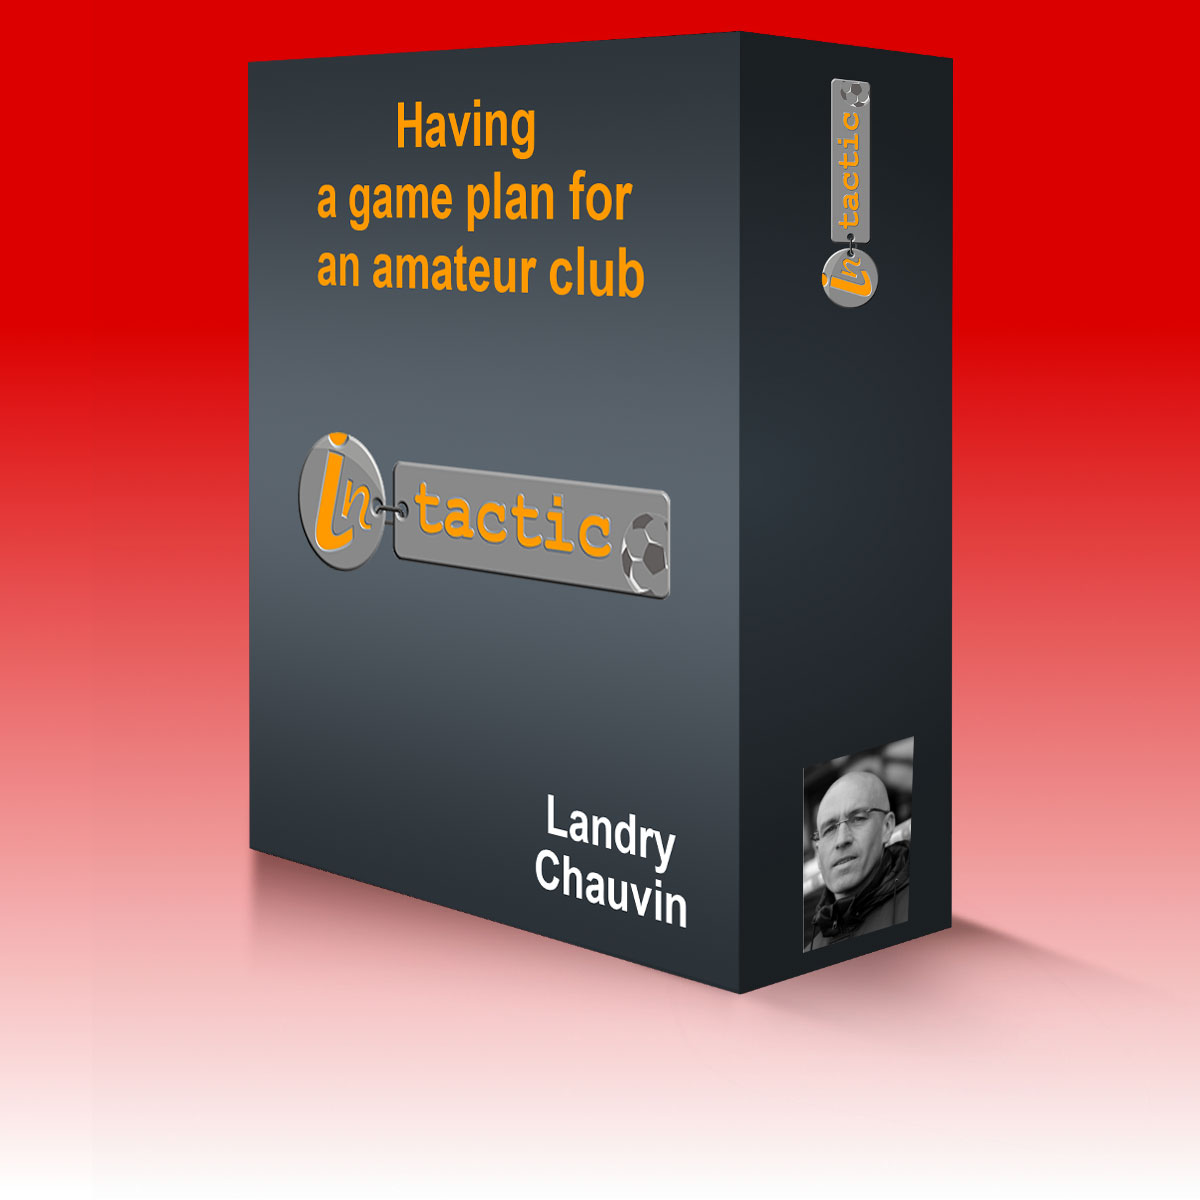 Having a game plan for an amateur club - Landry Chauvin